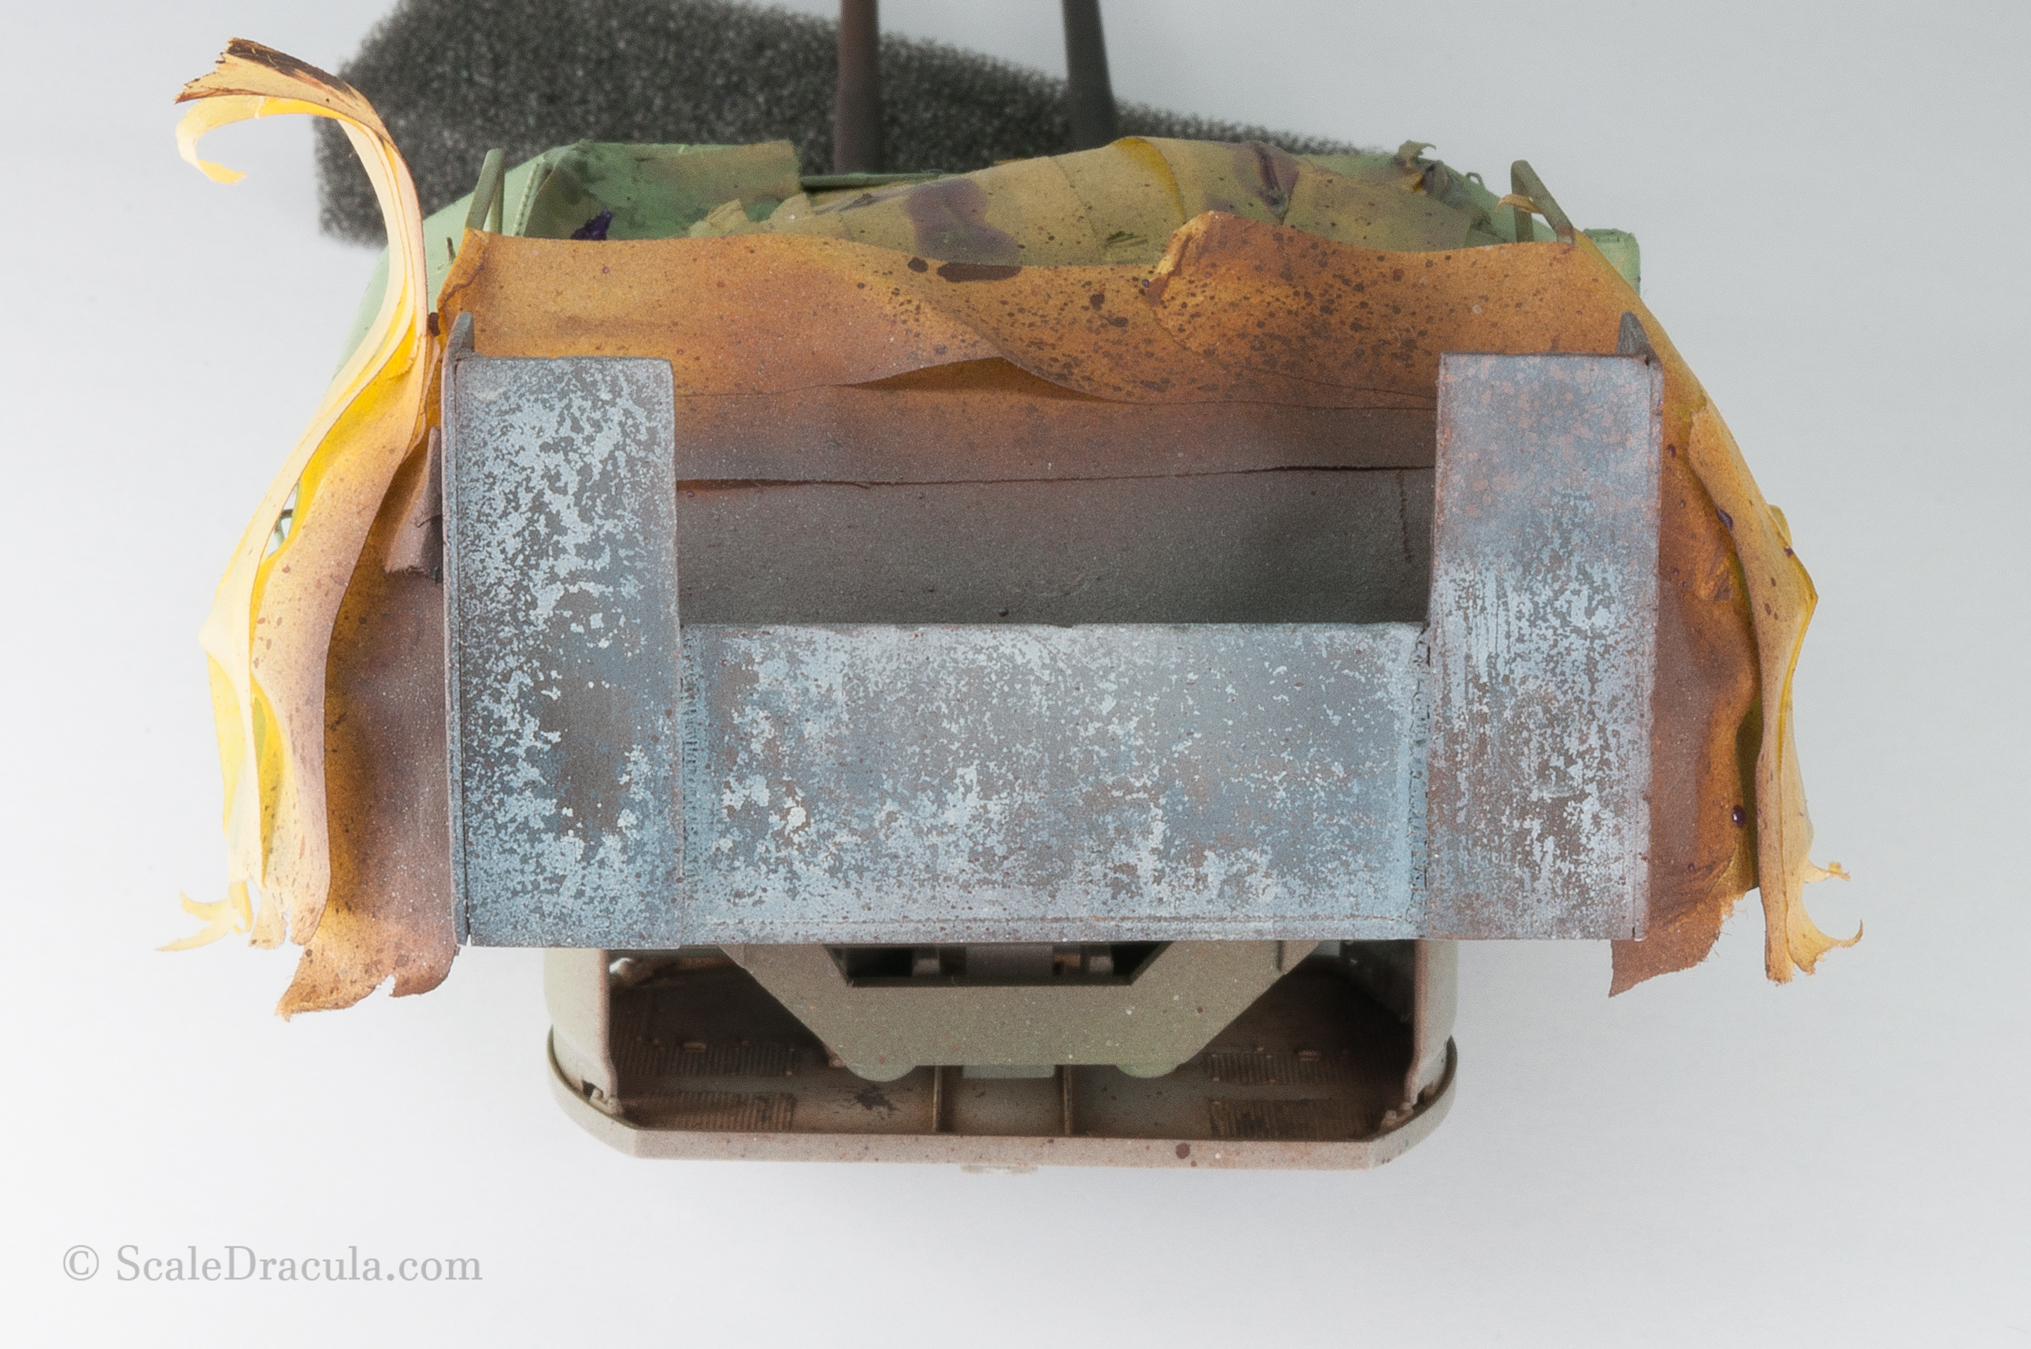 Base for painting rust, ZSU-57 by TAKOM